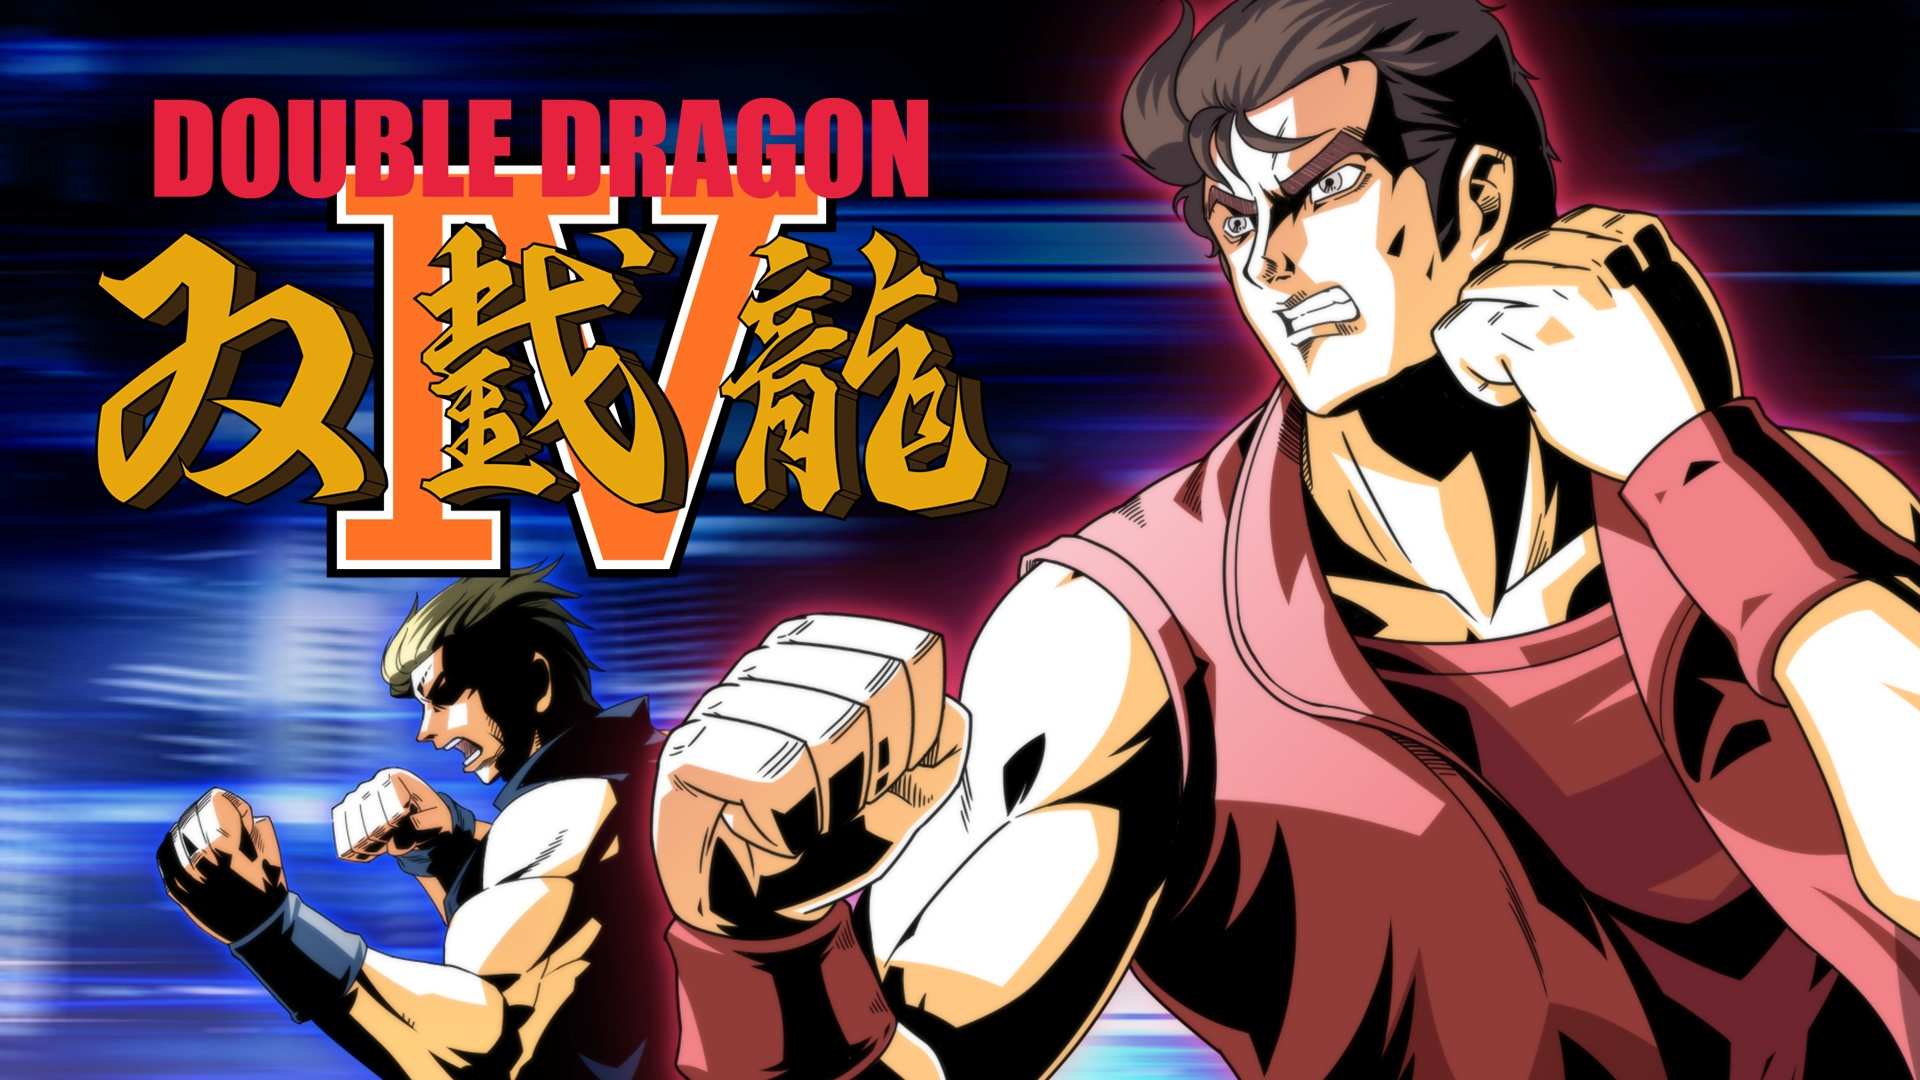 Double Dragon Iv Pc Steam Game Fanatical